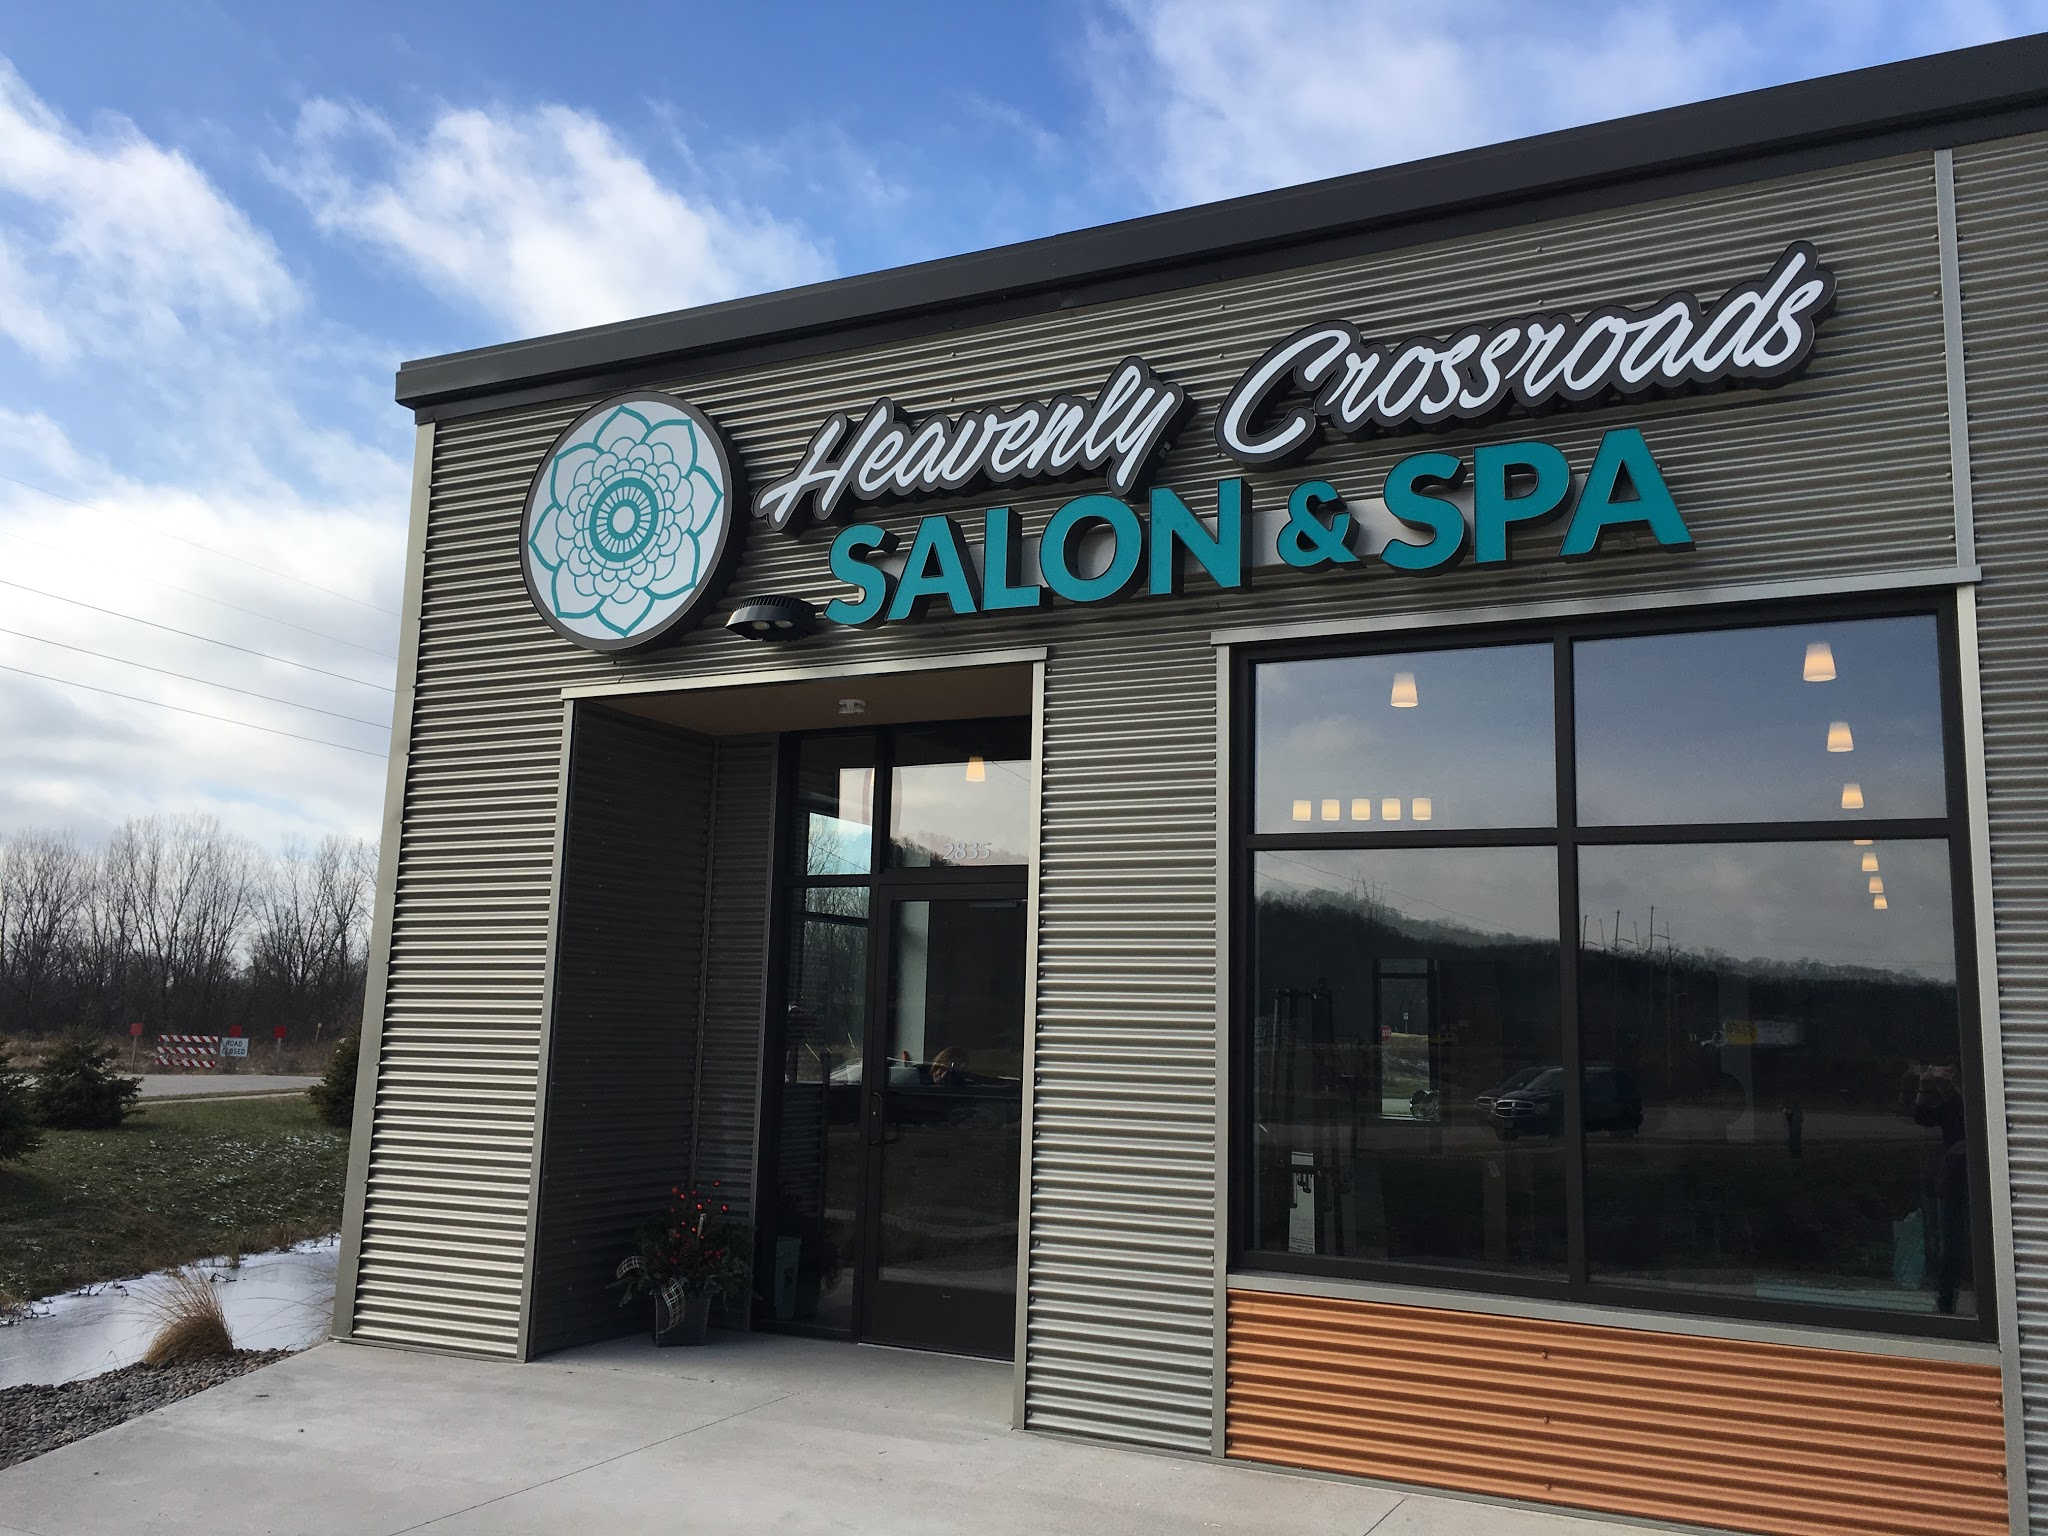 Heavenly Crossroads Salon & Spa image